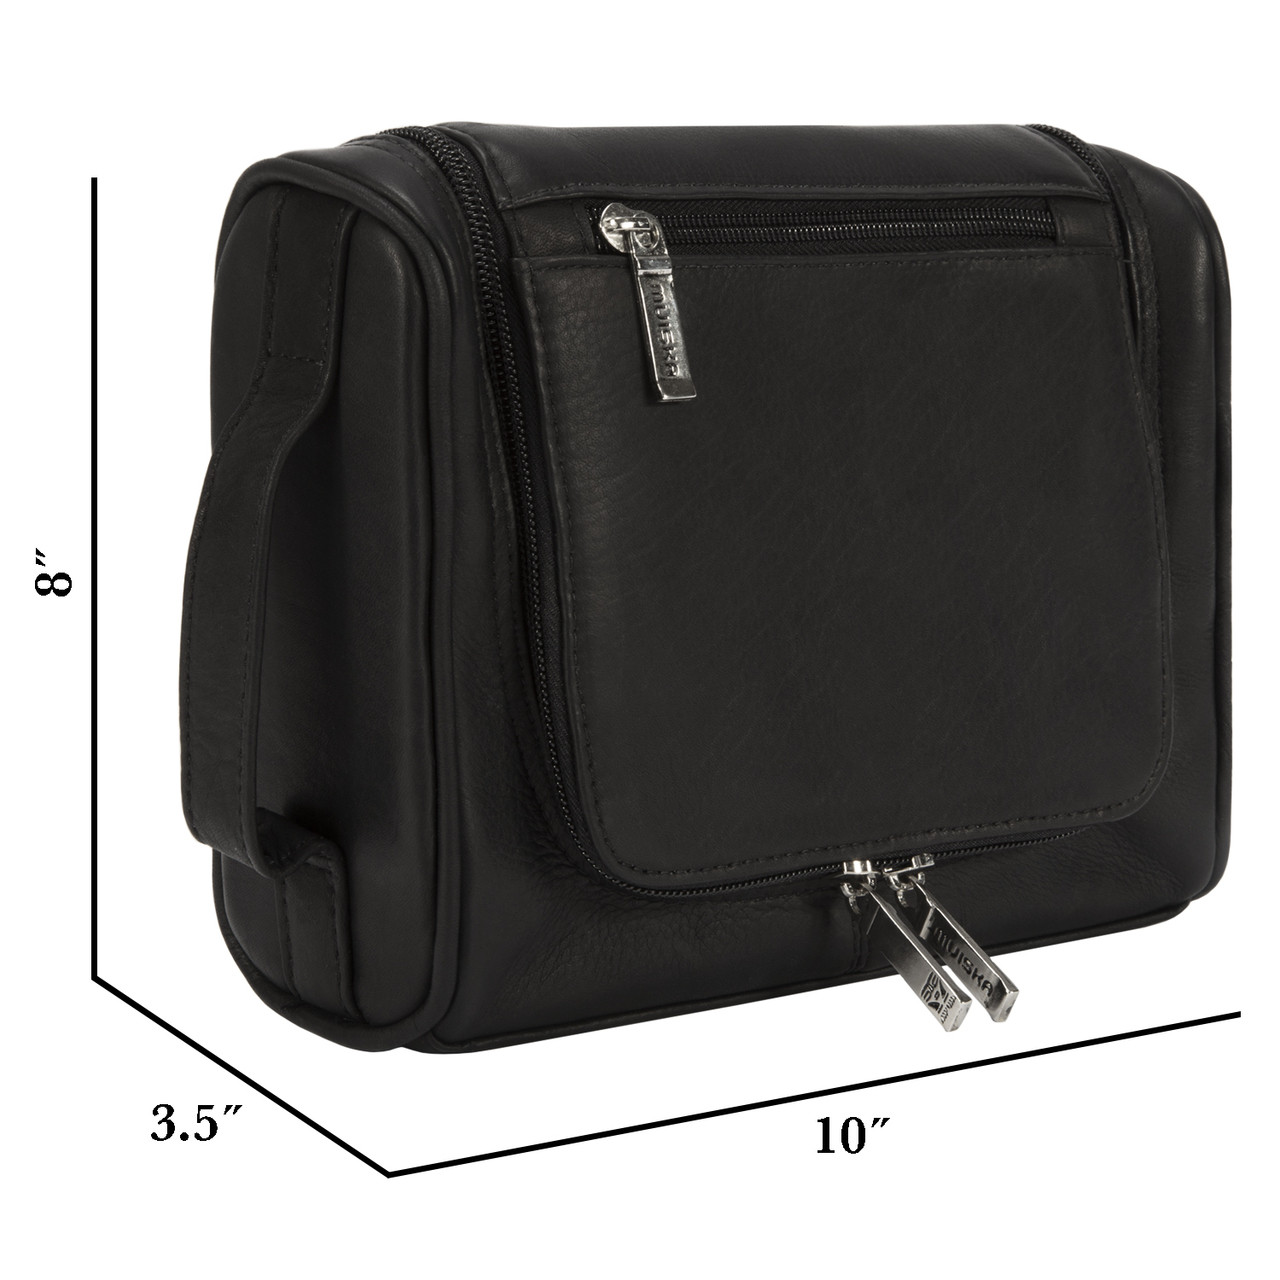 Muiska - Mateo - Hanging leather Toiletry Bag is the perfect size to fit in your suitcase